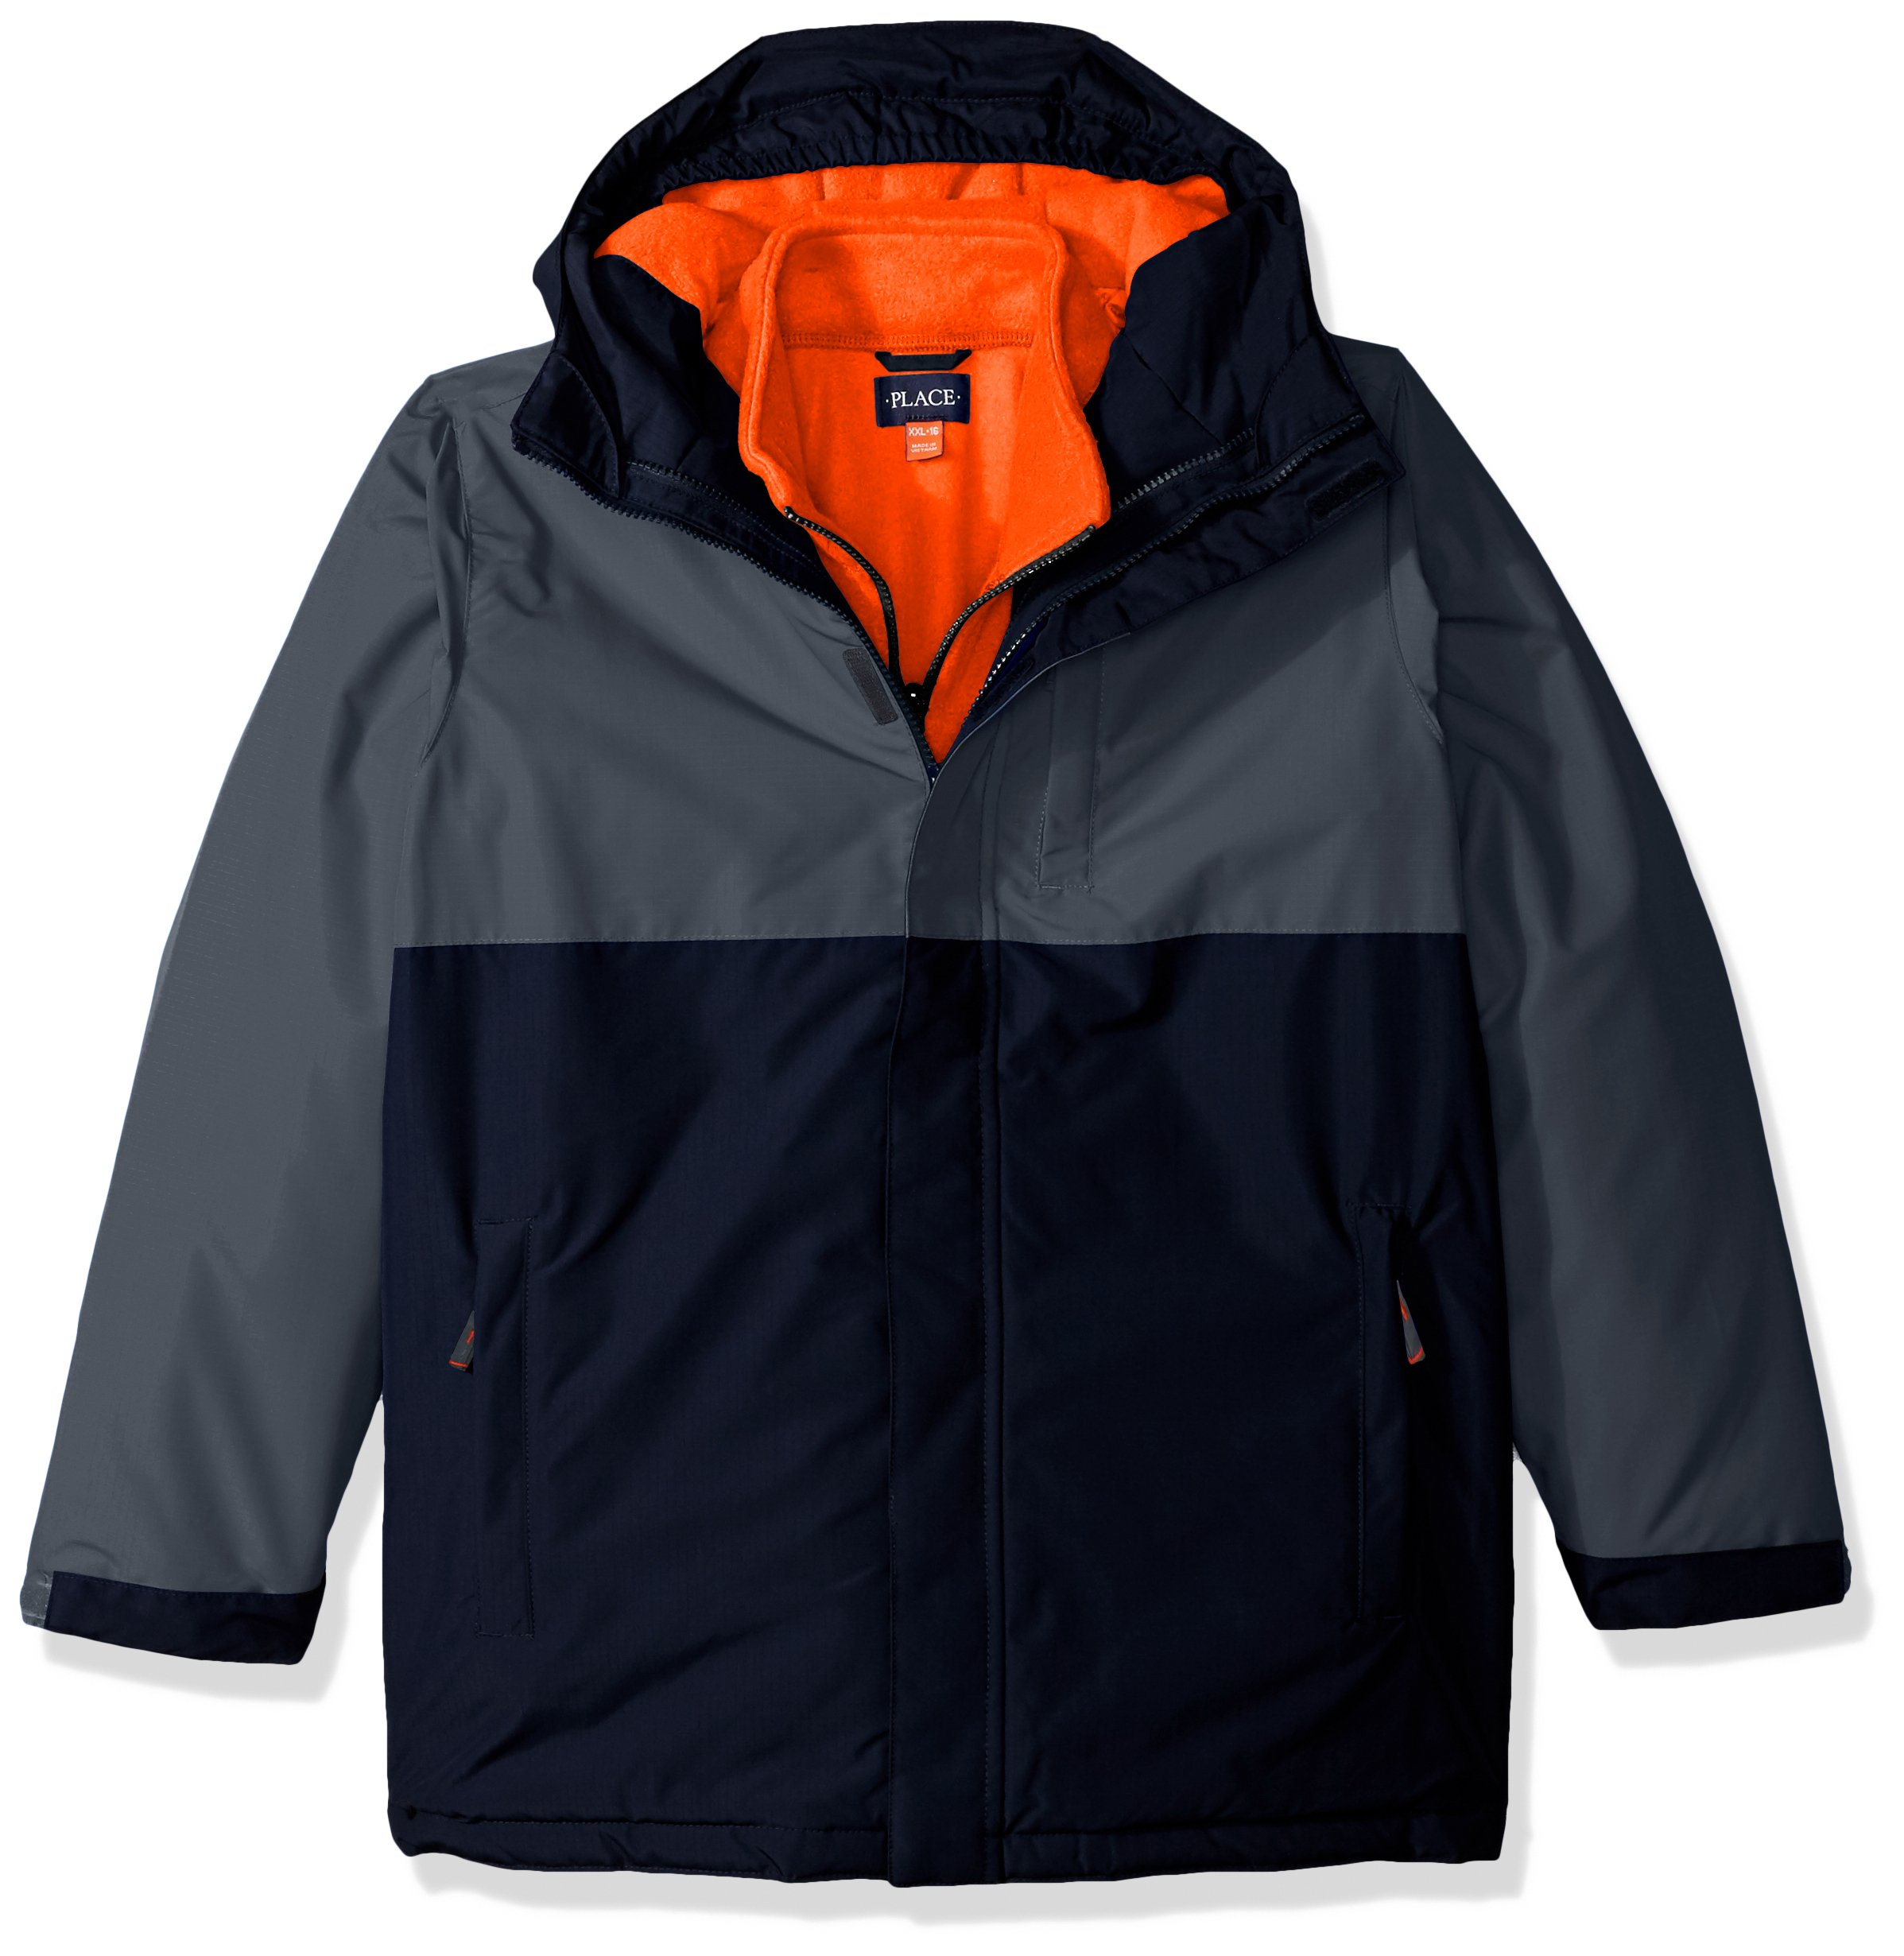 The Children's Place Big Girls' 3-in-1 Jacket, Storm, XS (4)